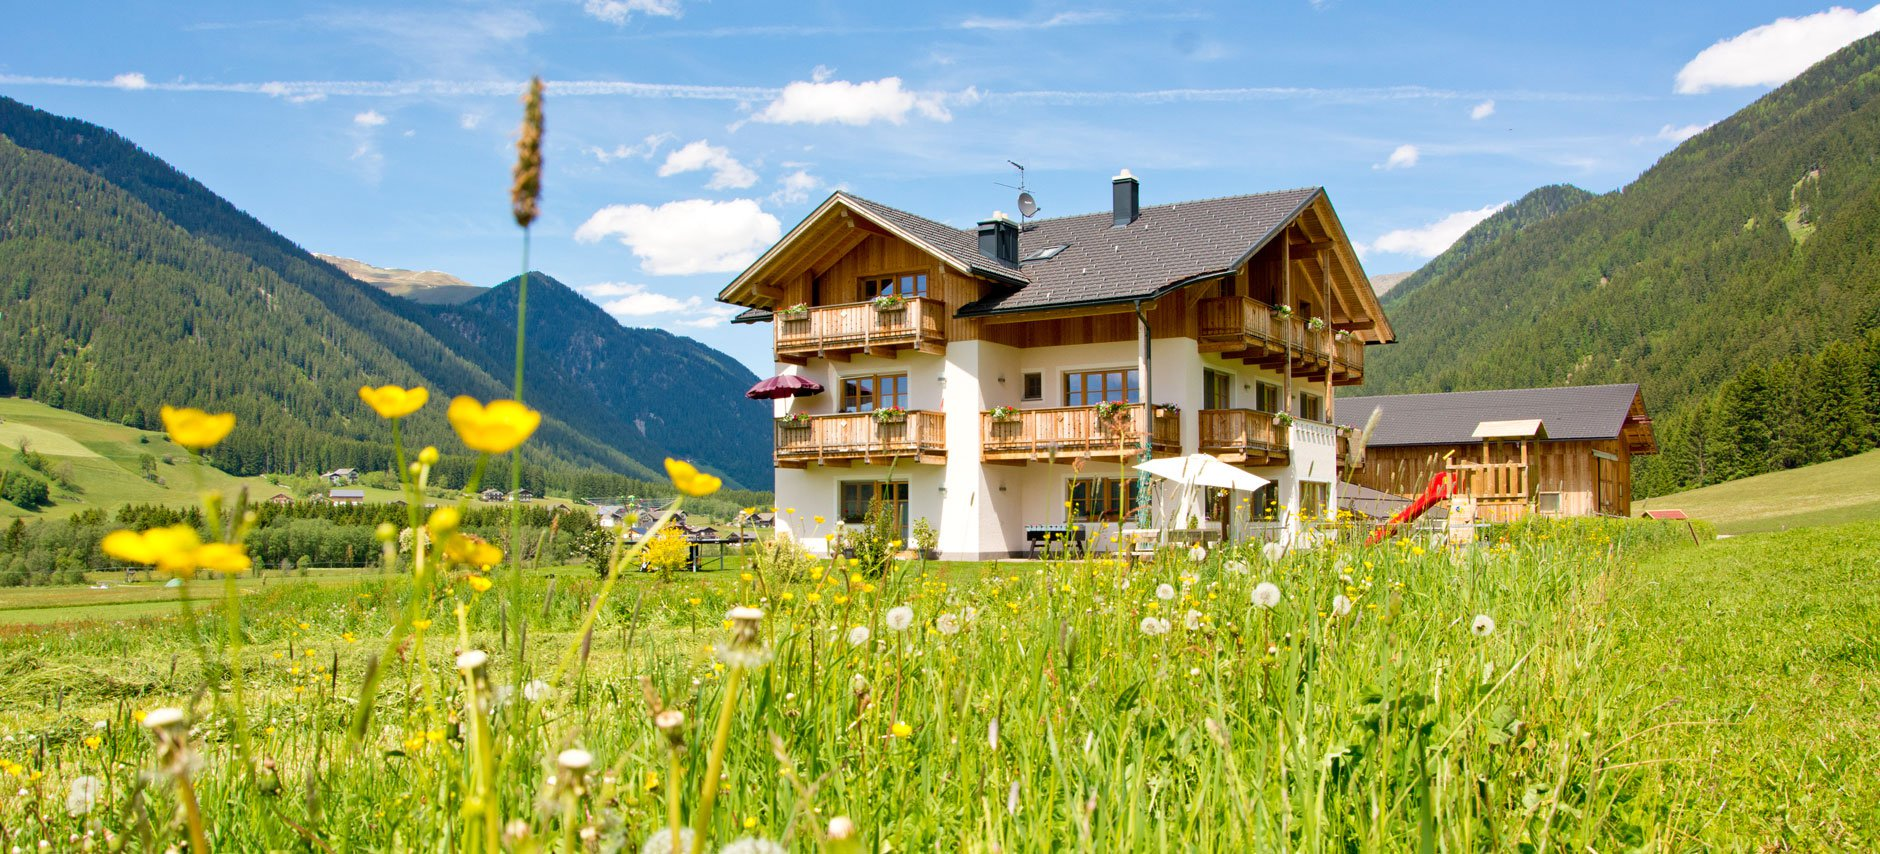 holidays-at-the-farm-val-di-pusteria